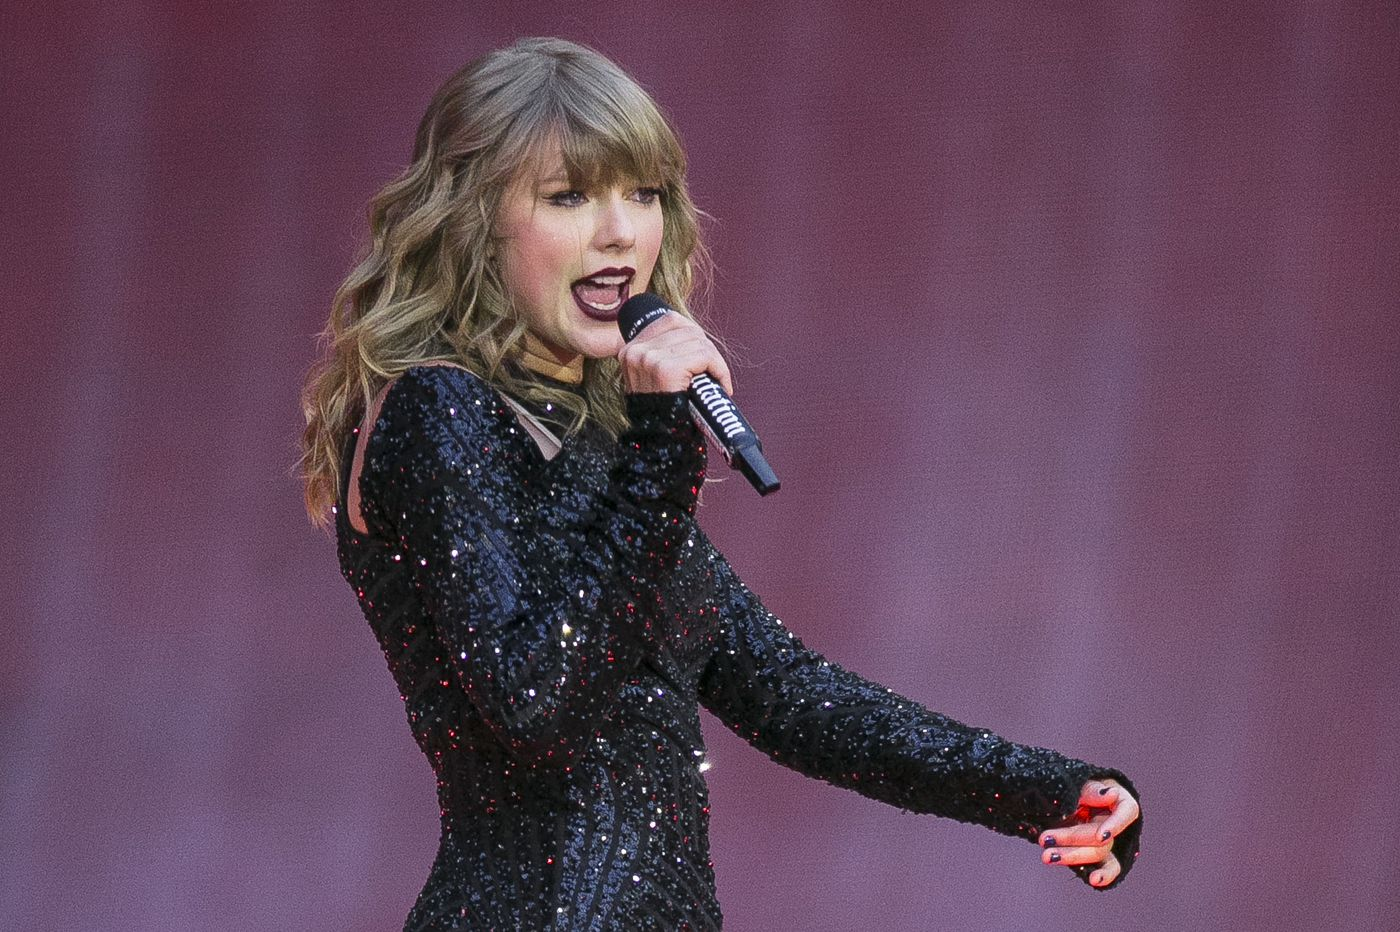 Where and when to watch Taylor Swift's concert, 'Scoob' on demand, and must-see livestreams this weekend